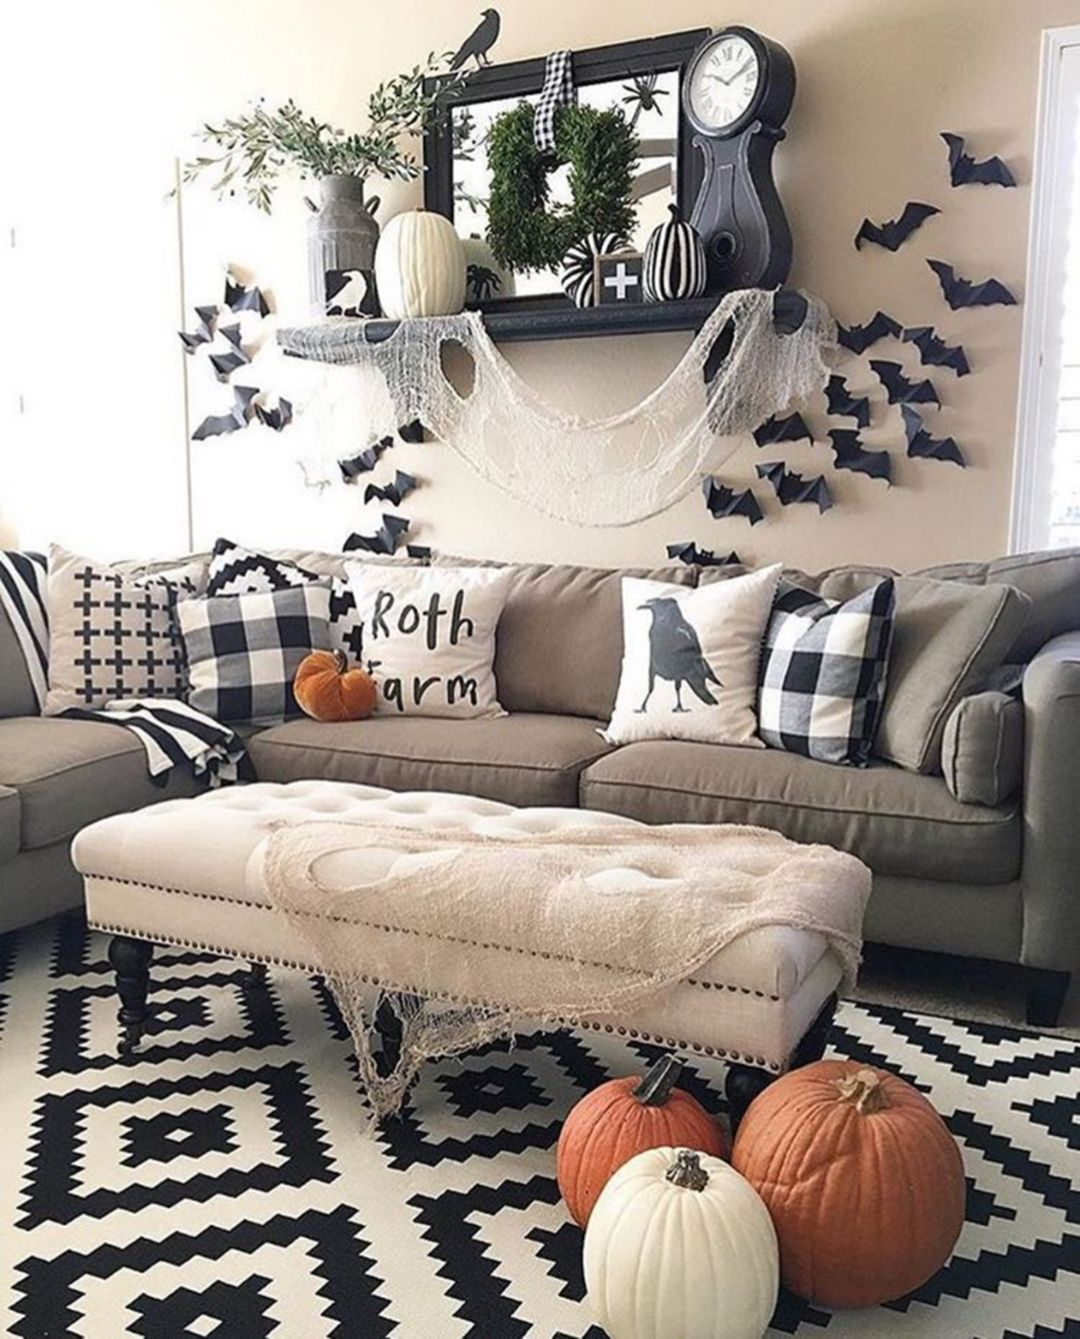 20+ Scary Home Decorations for Halloween Halloween